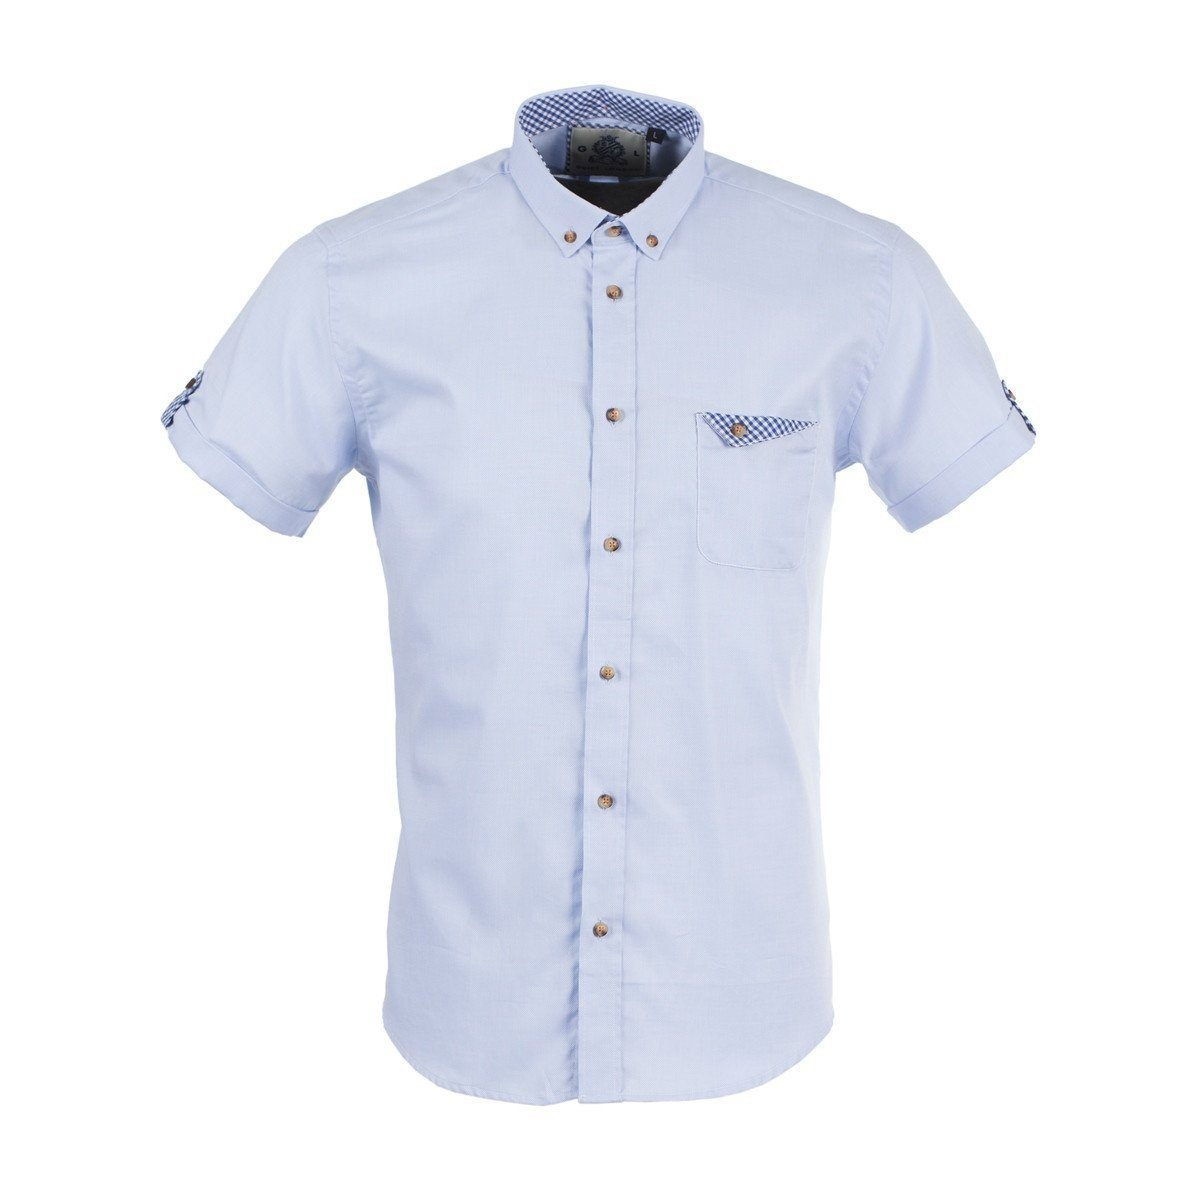 SKY Short Sleeve Oxford Shirt - Leonard Silver